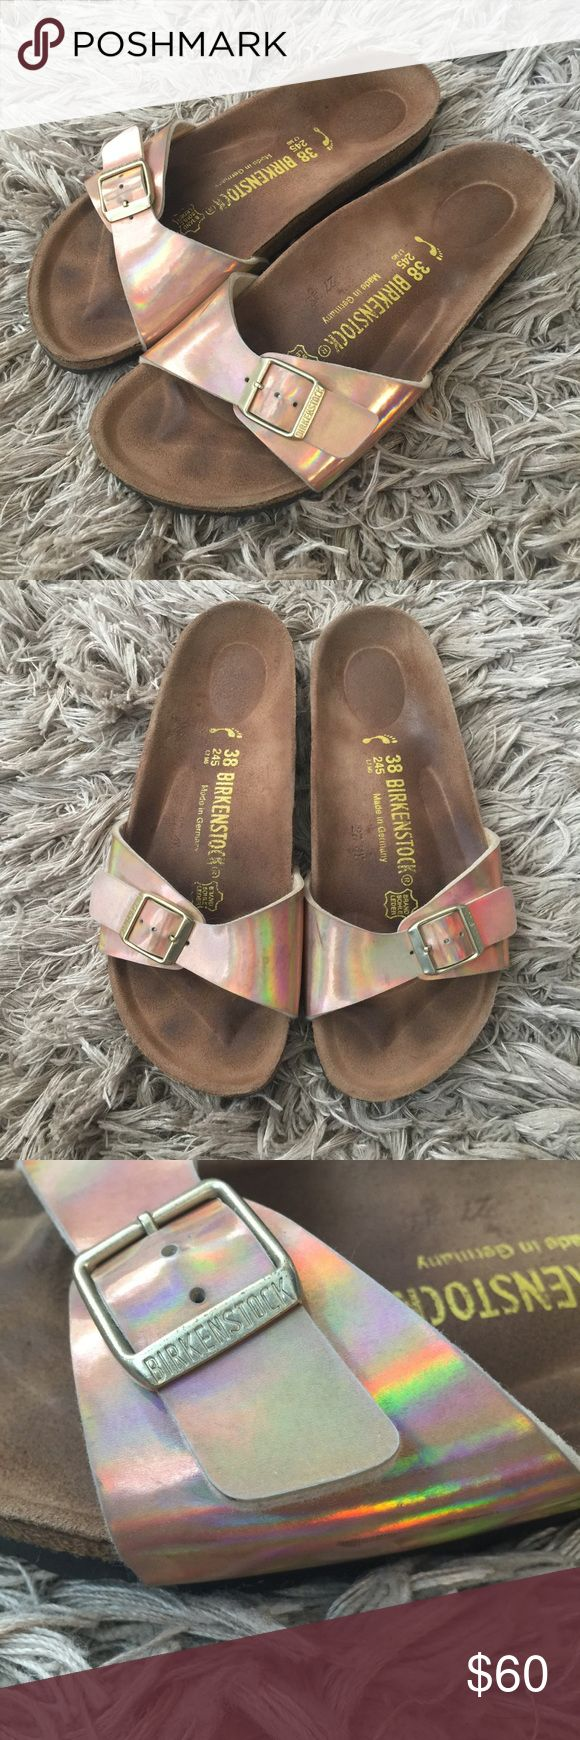 """Birkenstock Madrid in Mirror Rose Gold Birkenstock Madrid Sandals in color """"Mirror Rose Gold"""". These have a metallic/holographic coloring and are absolutely beautiful! Pre-loved, but still have a lot of life left. Light wear on bed of shoe and minor scuffs on the straps. Size 38 narrow (Ladies 7, Men's 5) Please see pictures and feel free to ask any questions! Birkenstock Shoes Sandals"""